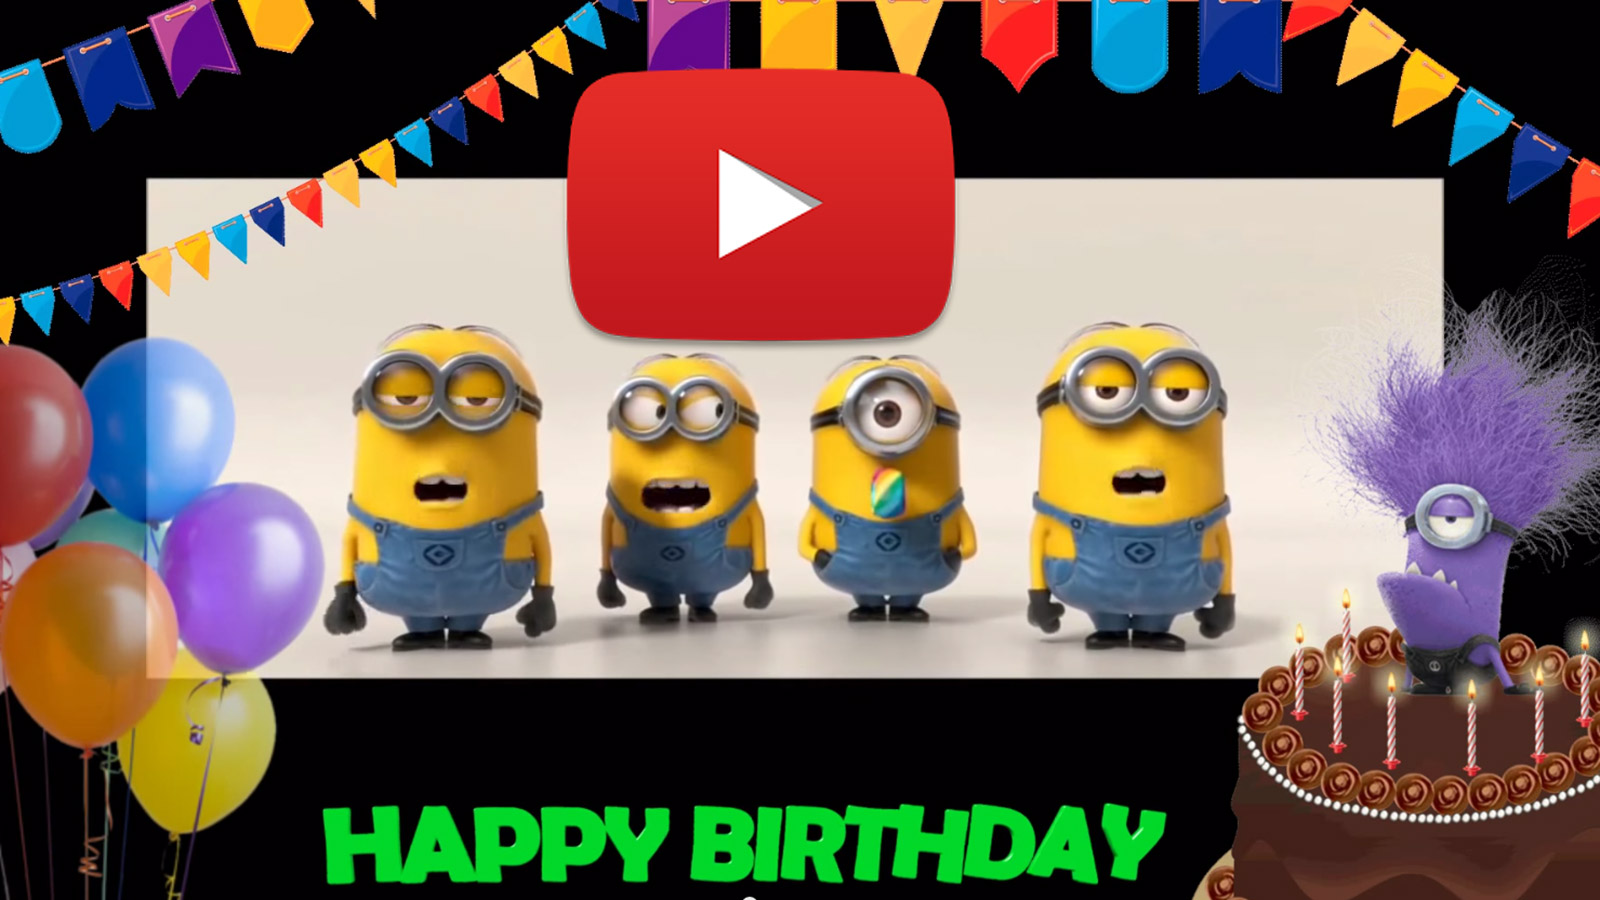 Happy birthday song minions gonrat you friends with birthday link happy birthday to you happy birthday song minions m4hsunfo